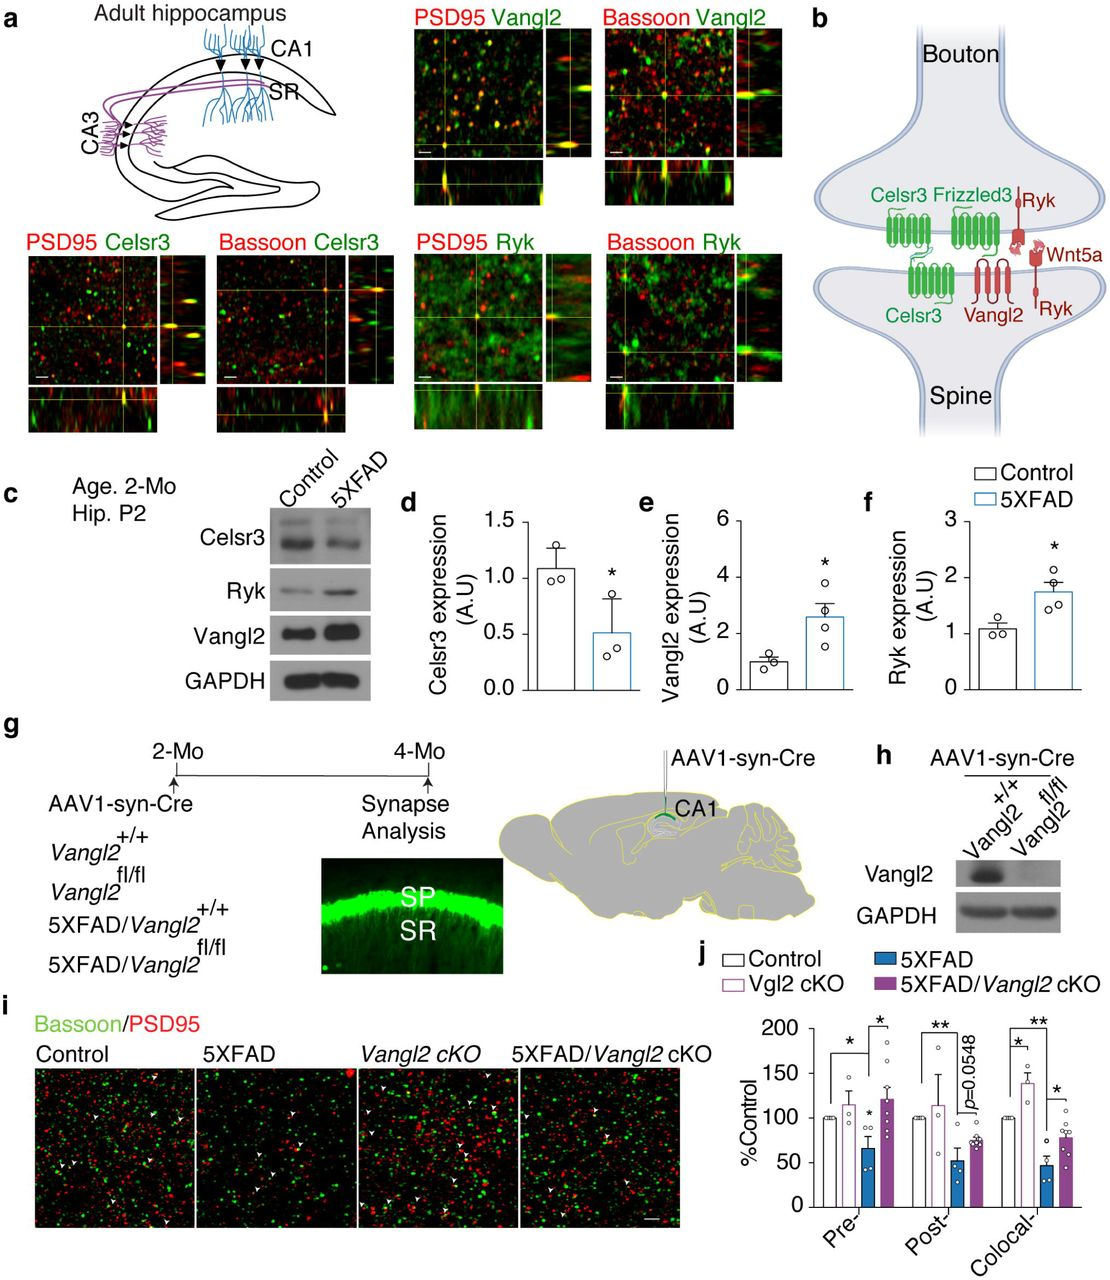 Localization of Wnt/PCP signaling components in glutamatergic synapses in adult hippocampus and requirement of Vangl2 for synapse loss in the 5XFAD mice. a , Costaining of Vangl2 (Green) and Celsr3 (Green) with postsynaptic markers, PSD-95 (Red) and presynaptic mater bassoon (Red). Arrows indicate colocalized puncta. SR, stratum radiatum; SP, stratum pyramidale. b, Schematic diagram showing the distribution of the Wnt/PCP signaling components in glutamatergic synapses. c-f, Expression levels of Celsr3, Ryk and Vangl2 in the P2 synaptosome fraction for adult hippocampus in control and 5XFAD transgenic mice. Student t -test. g, Schematics illustrating the experimental design. AAV1-hSyn-eGFP-Cre virus was injected into CA1 region of the hippocampus bilaterally. 2 months later, animals were fixed with perfusion and sectioning and stained with synaptic markers. h, Vangl2 protein level in total protein extracts from hippocampi injected with AAV1-hSyn-eGFP-Cre virus. i, Representative images of costaining for Bassoon (red)- and PSD95 (green)- (arrowheads indicate colocalization) in the stratum radiatum. j, quantification of (I). n=5 for control mice, n=3 for Vangl2 cKO mice, n=4 for 5XFAD mice and n=8 for 5XFAD ; Vangl2 cKO mice. One-way ANOVA. * P